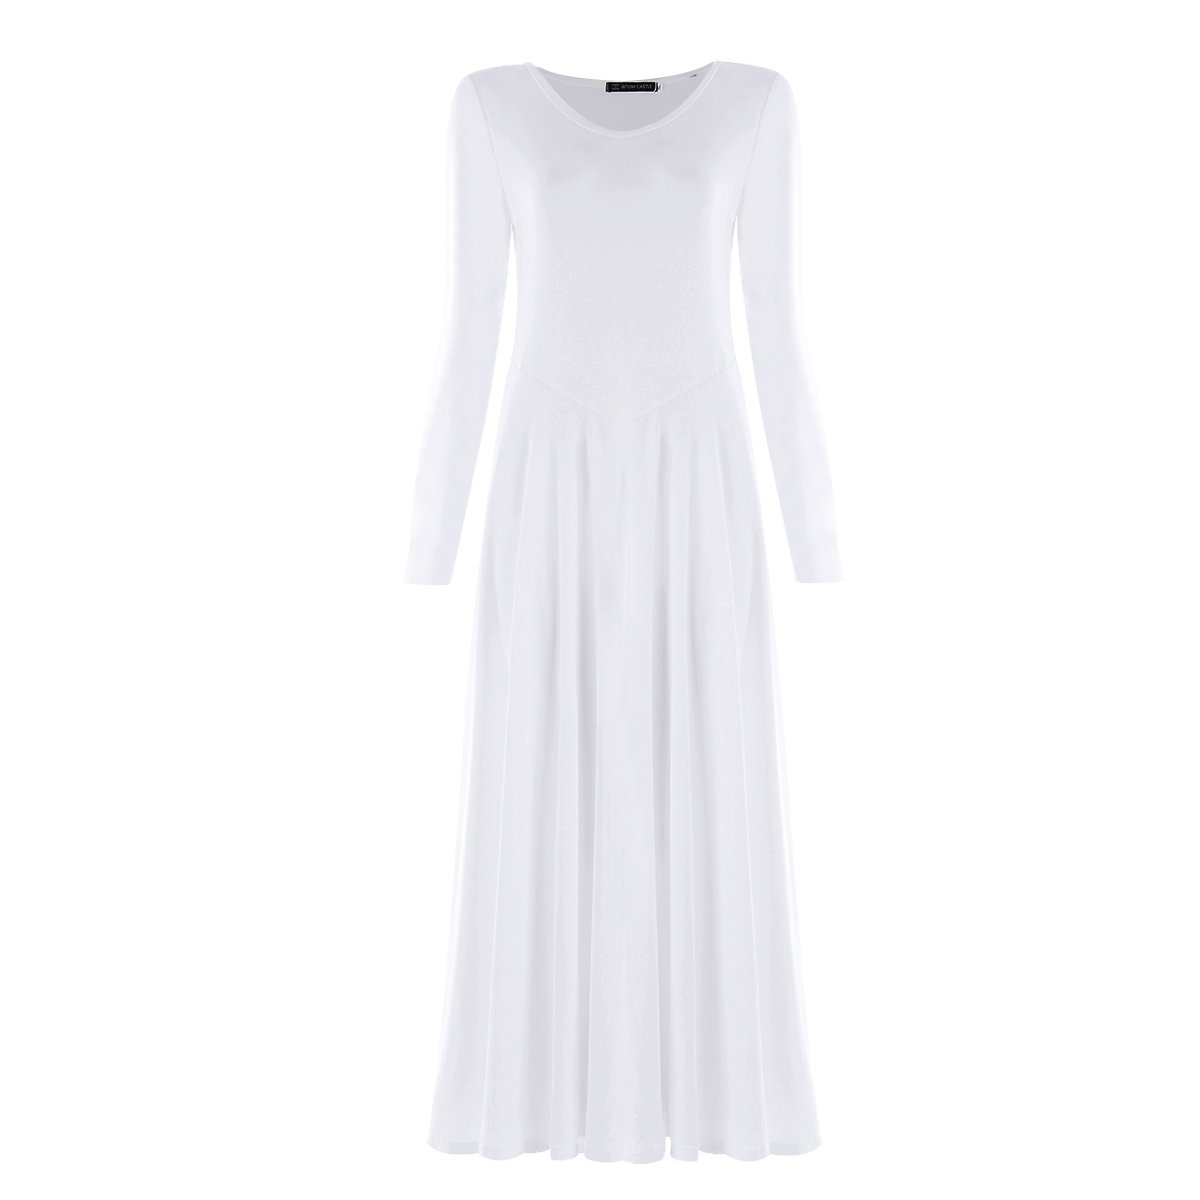 OwlFay Women Solid Long Sleeve Full Length Loose Fit Swing Liturgical Dance Dress Prime Tunic Circle Skirts White M